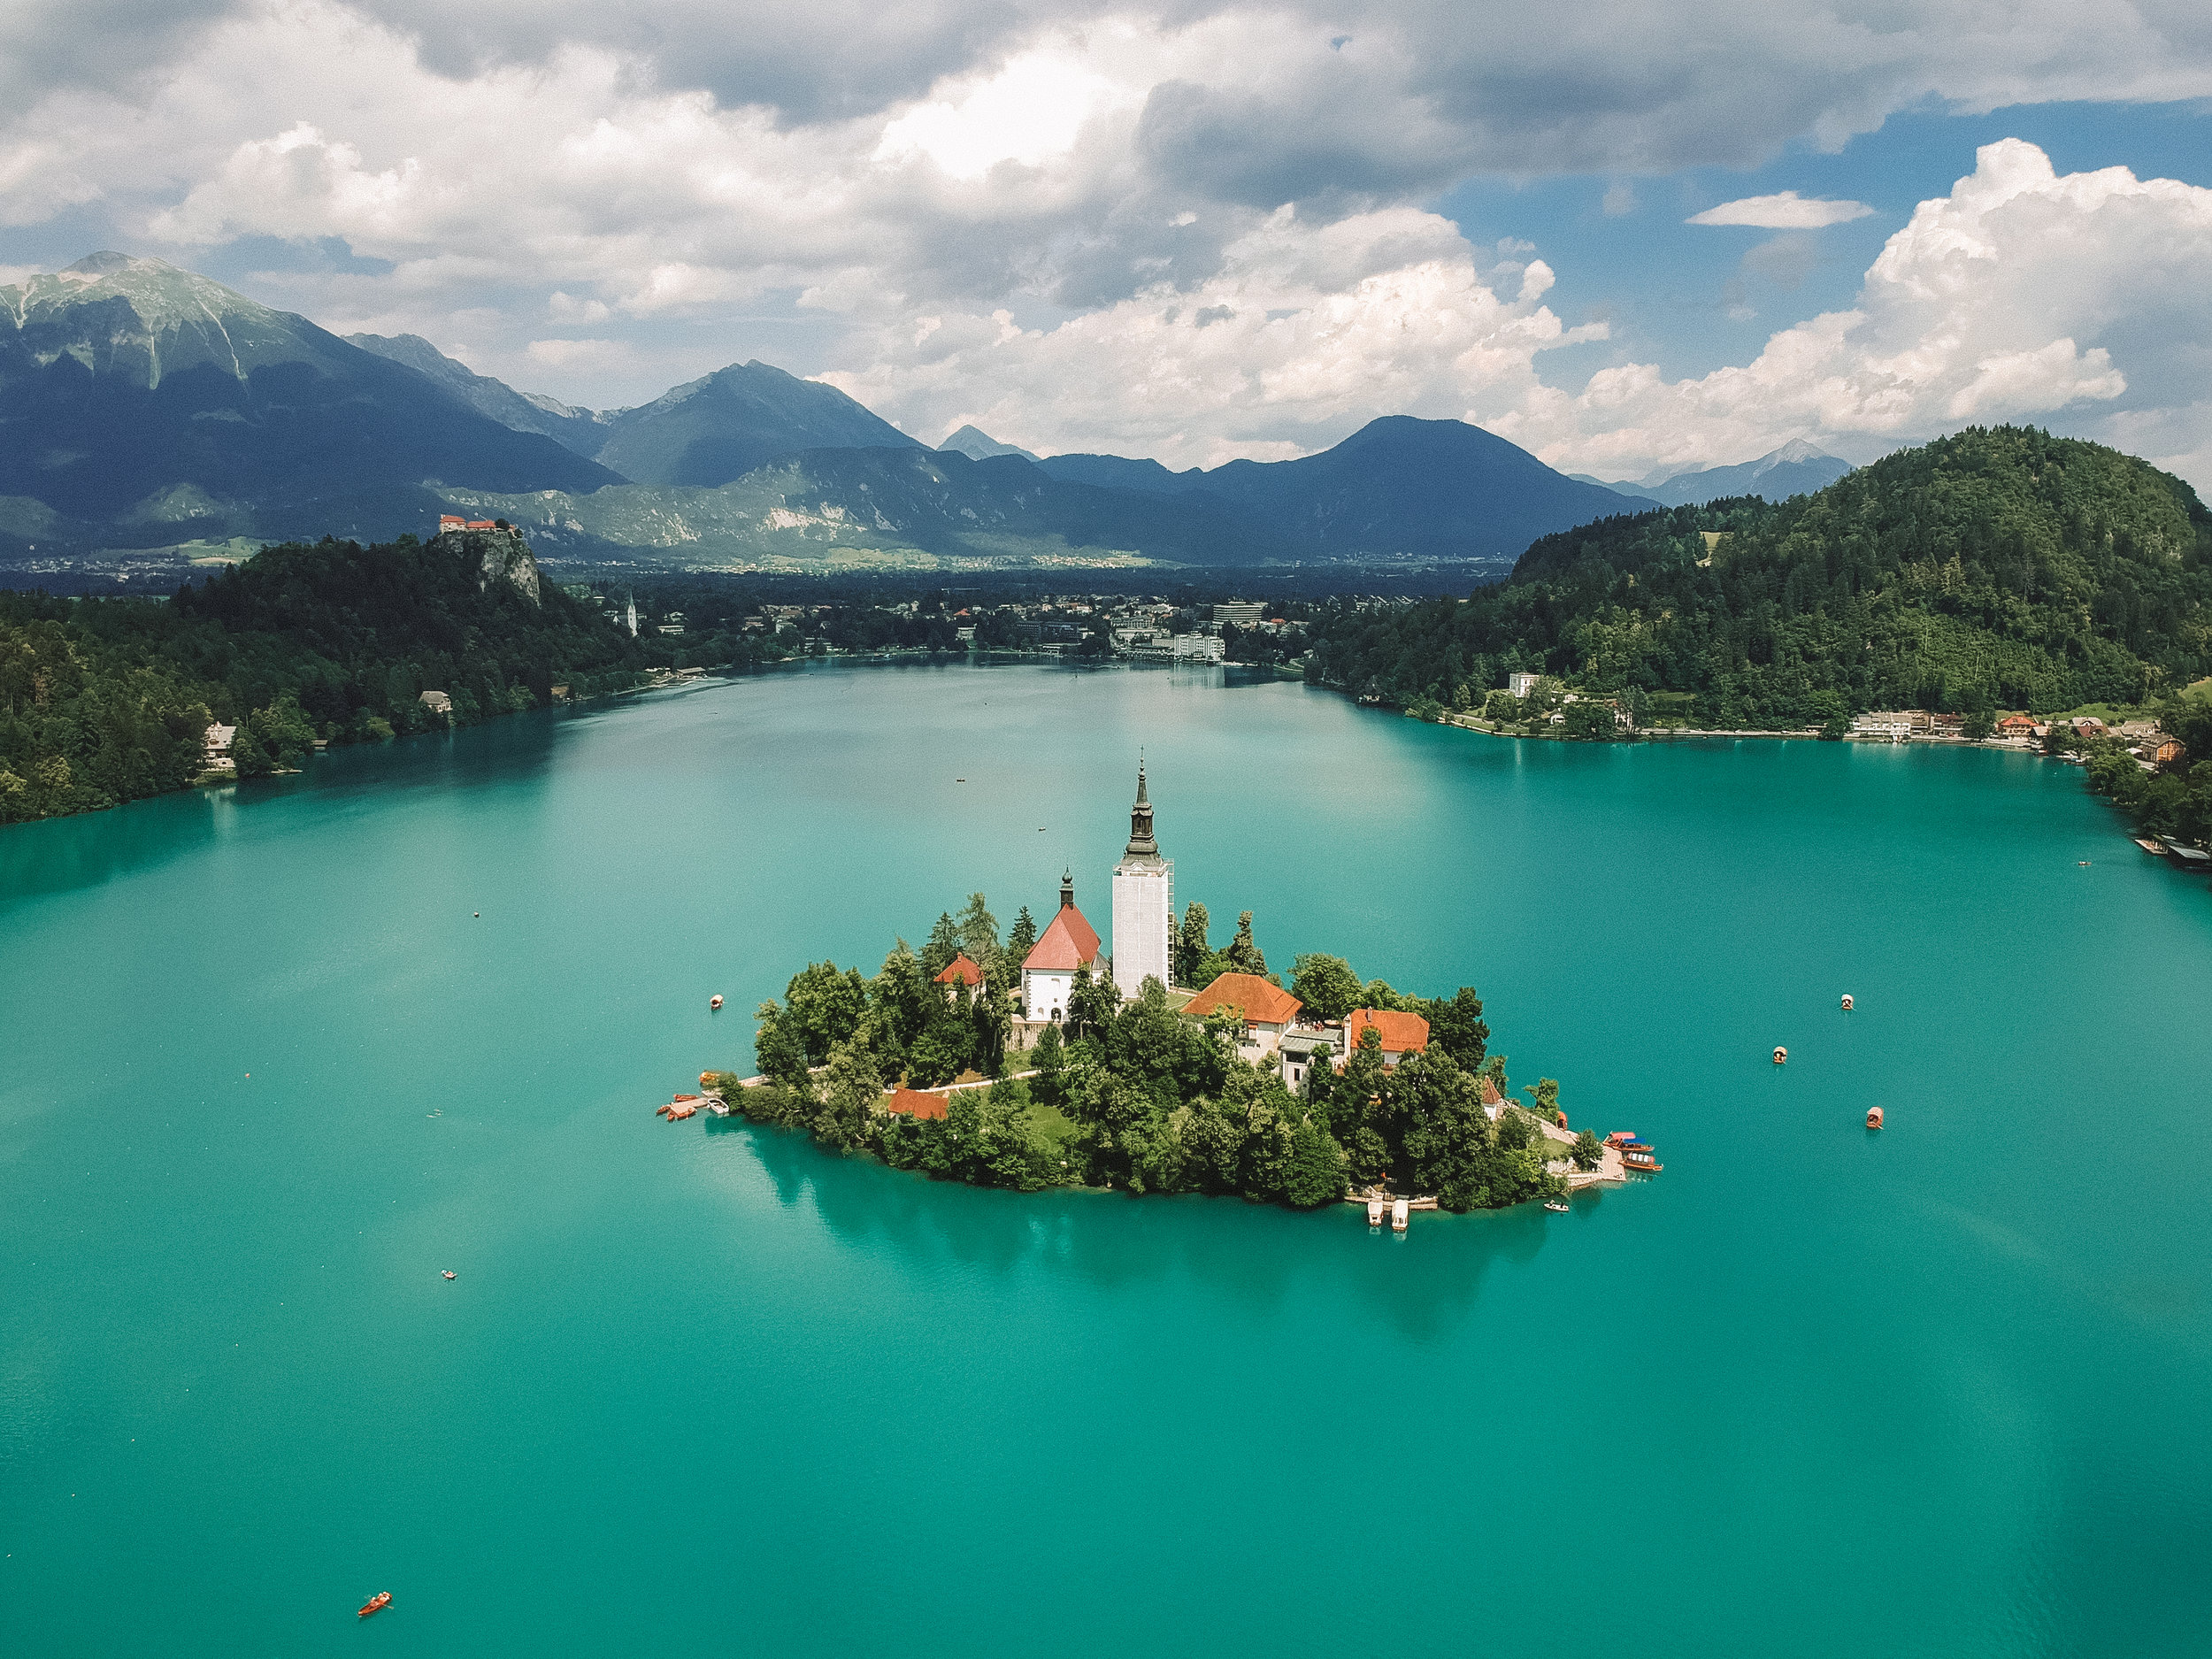 How To Spend A Day In The Fairytale Land That Is Lake Bled